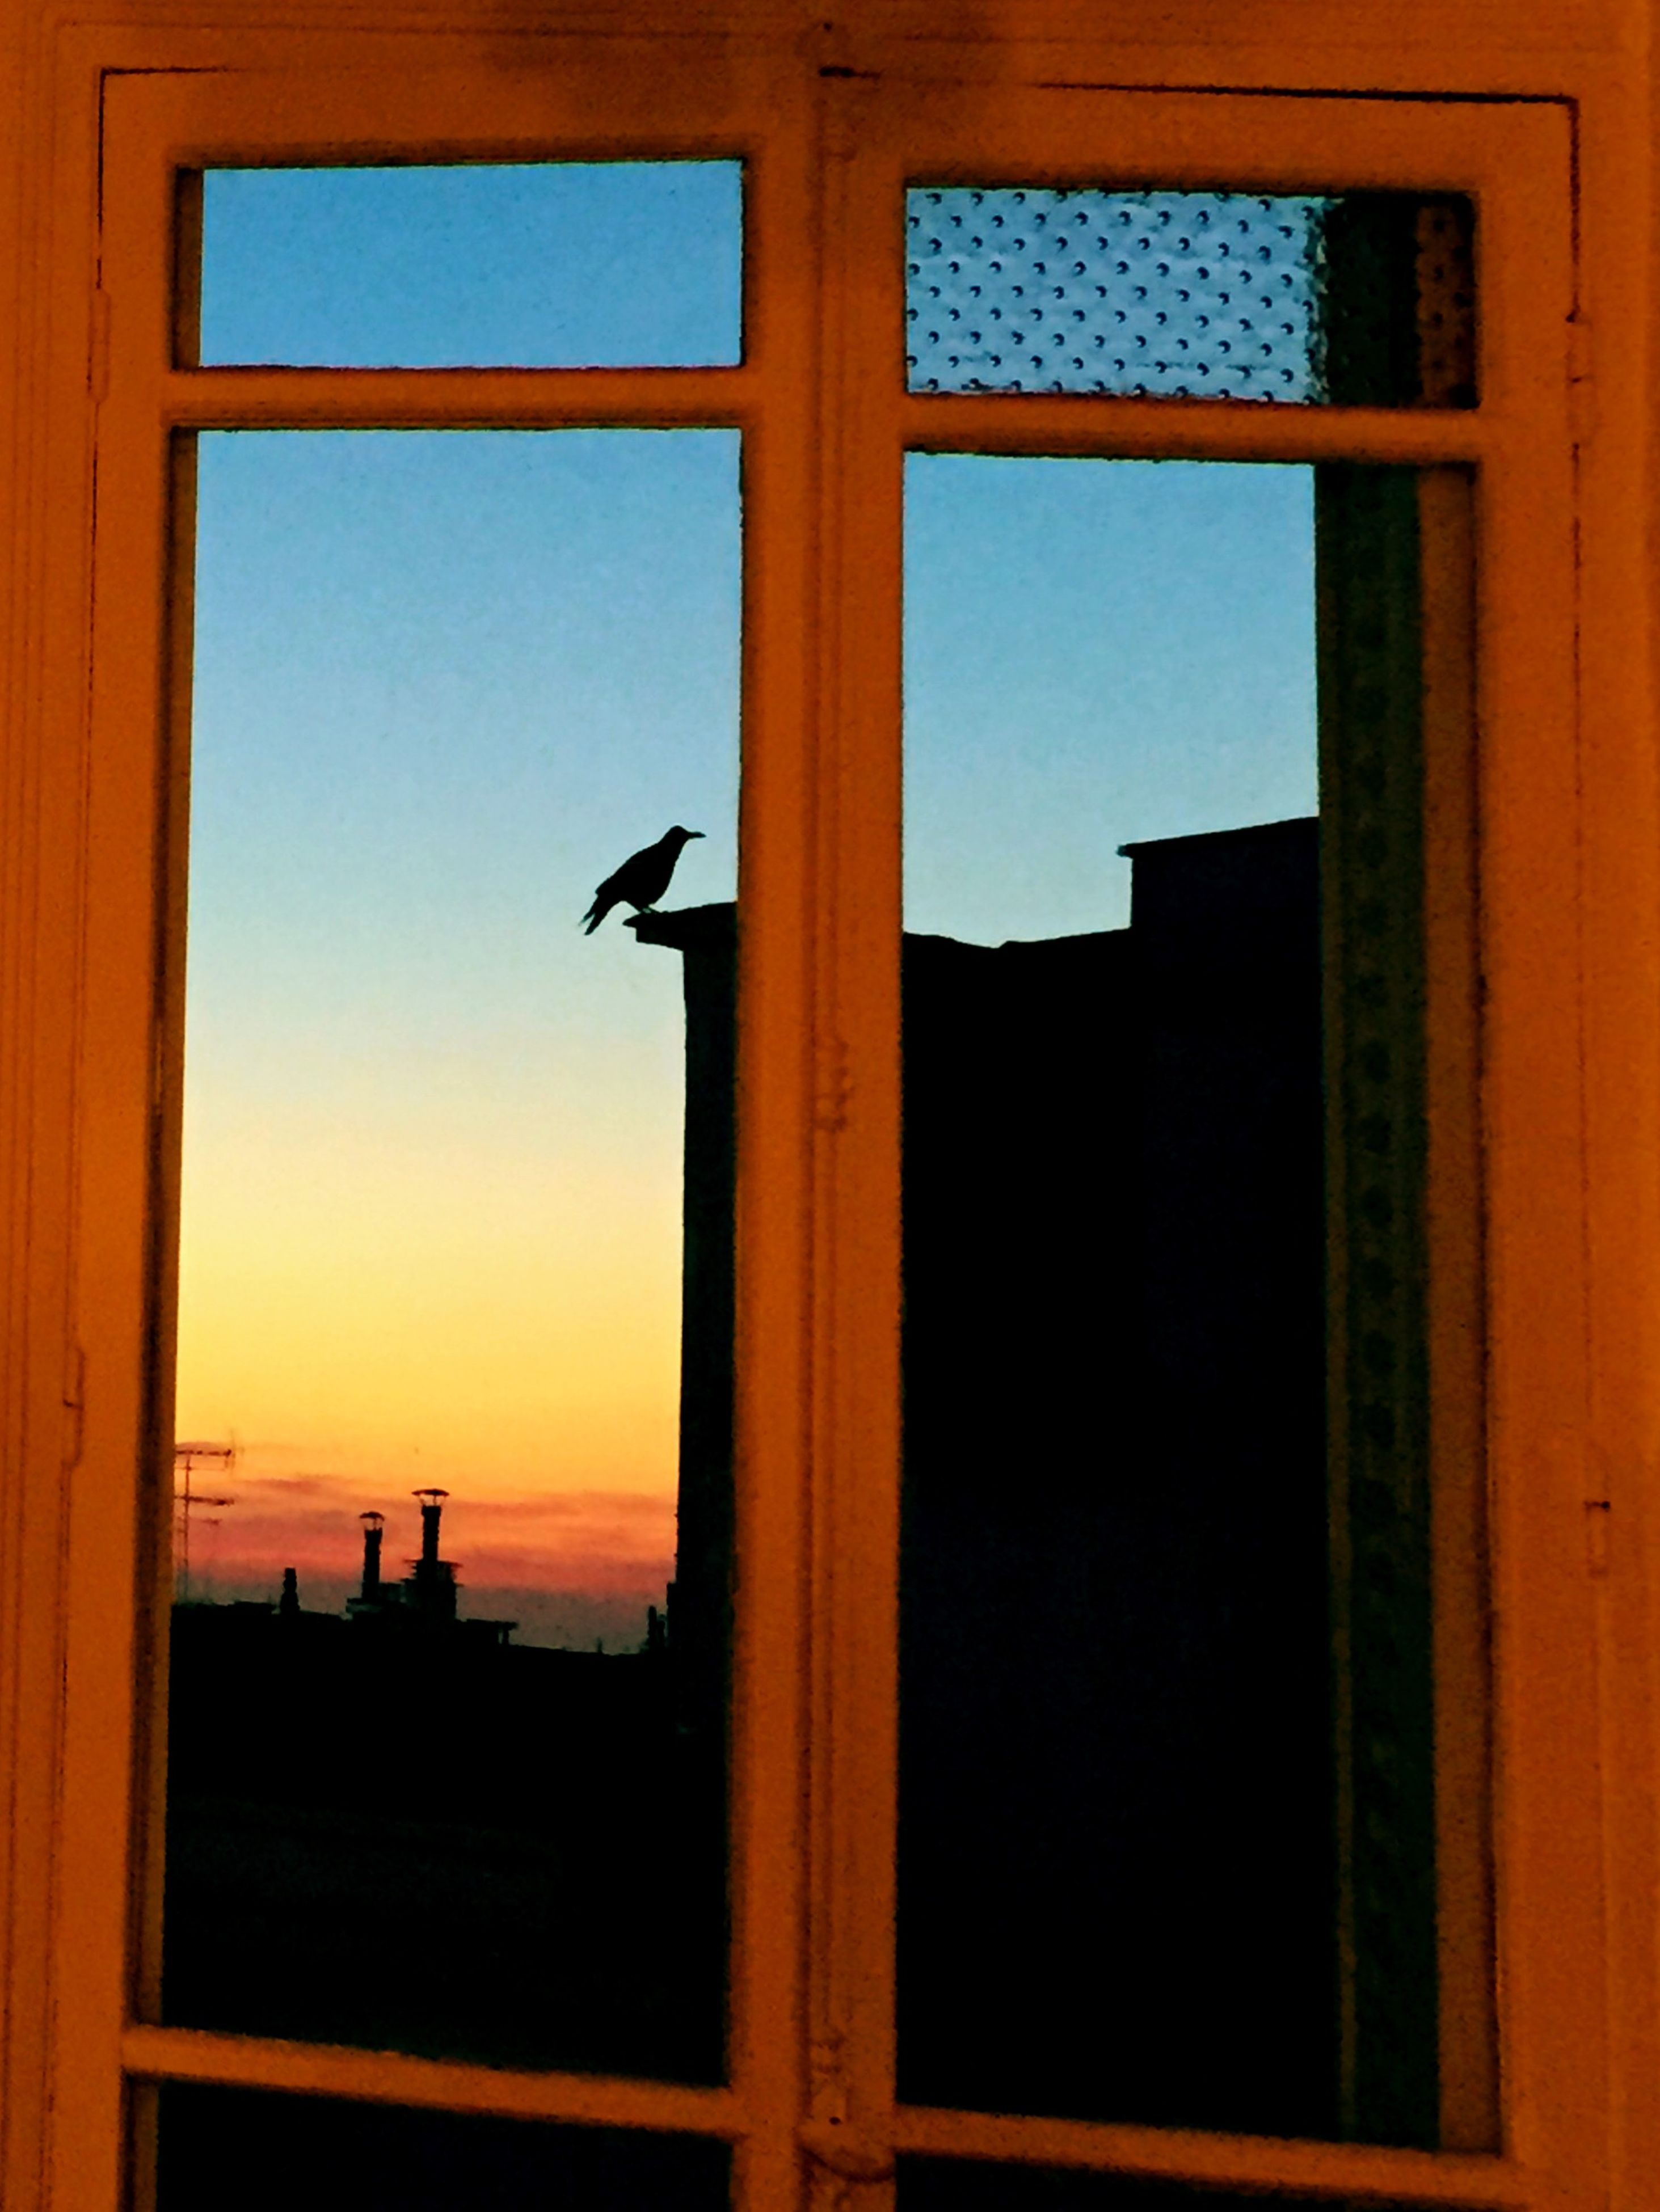 window, silhouette, sunset, built structure, architecture, building exterior, indoors, orange color, low angle view, sky, glass - material, animal themes, bird, house, one animal, building, transparent, no people, sunlight, flying